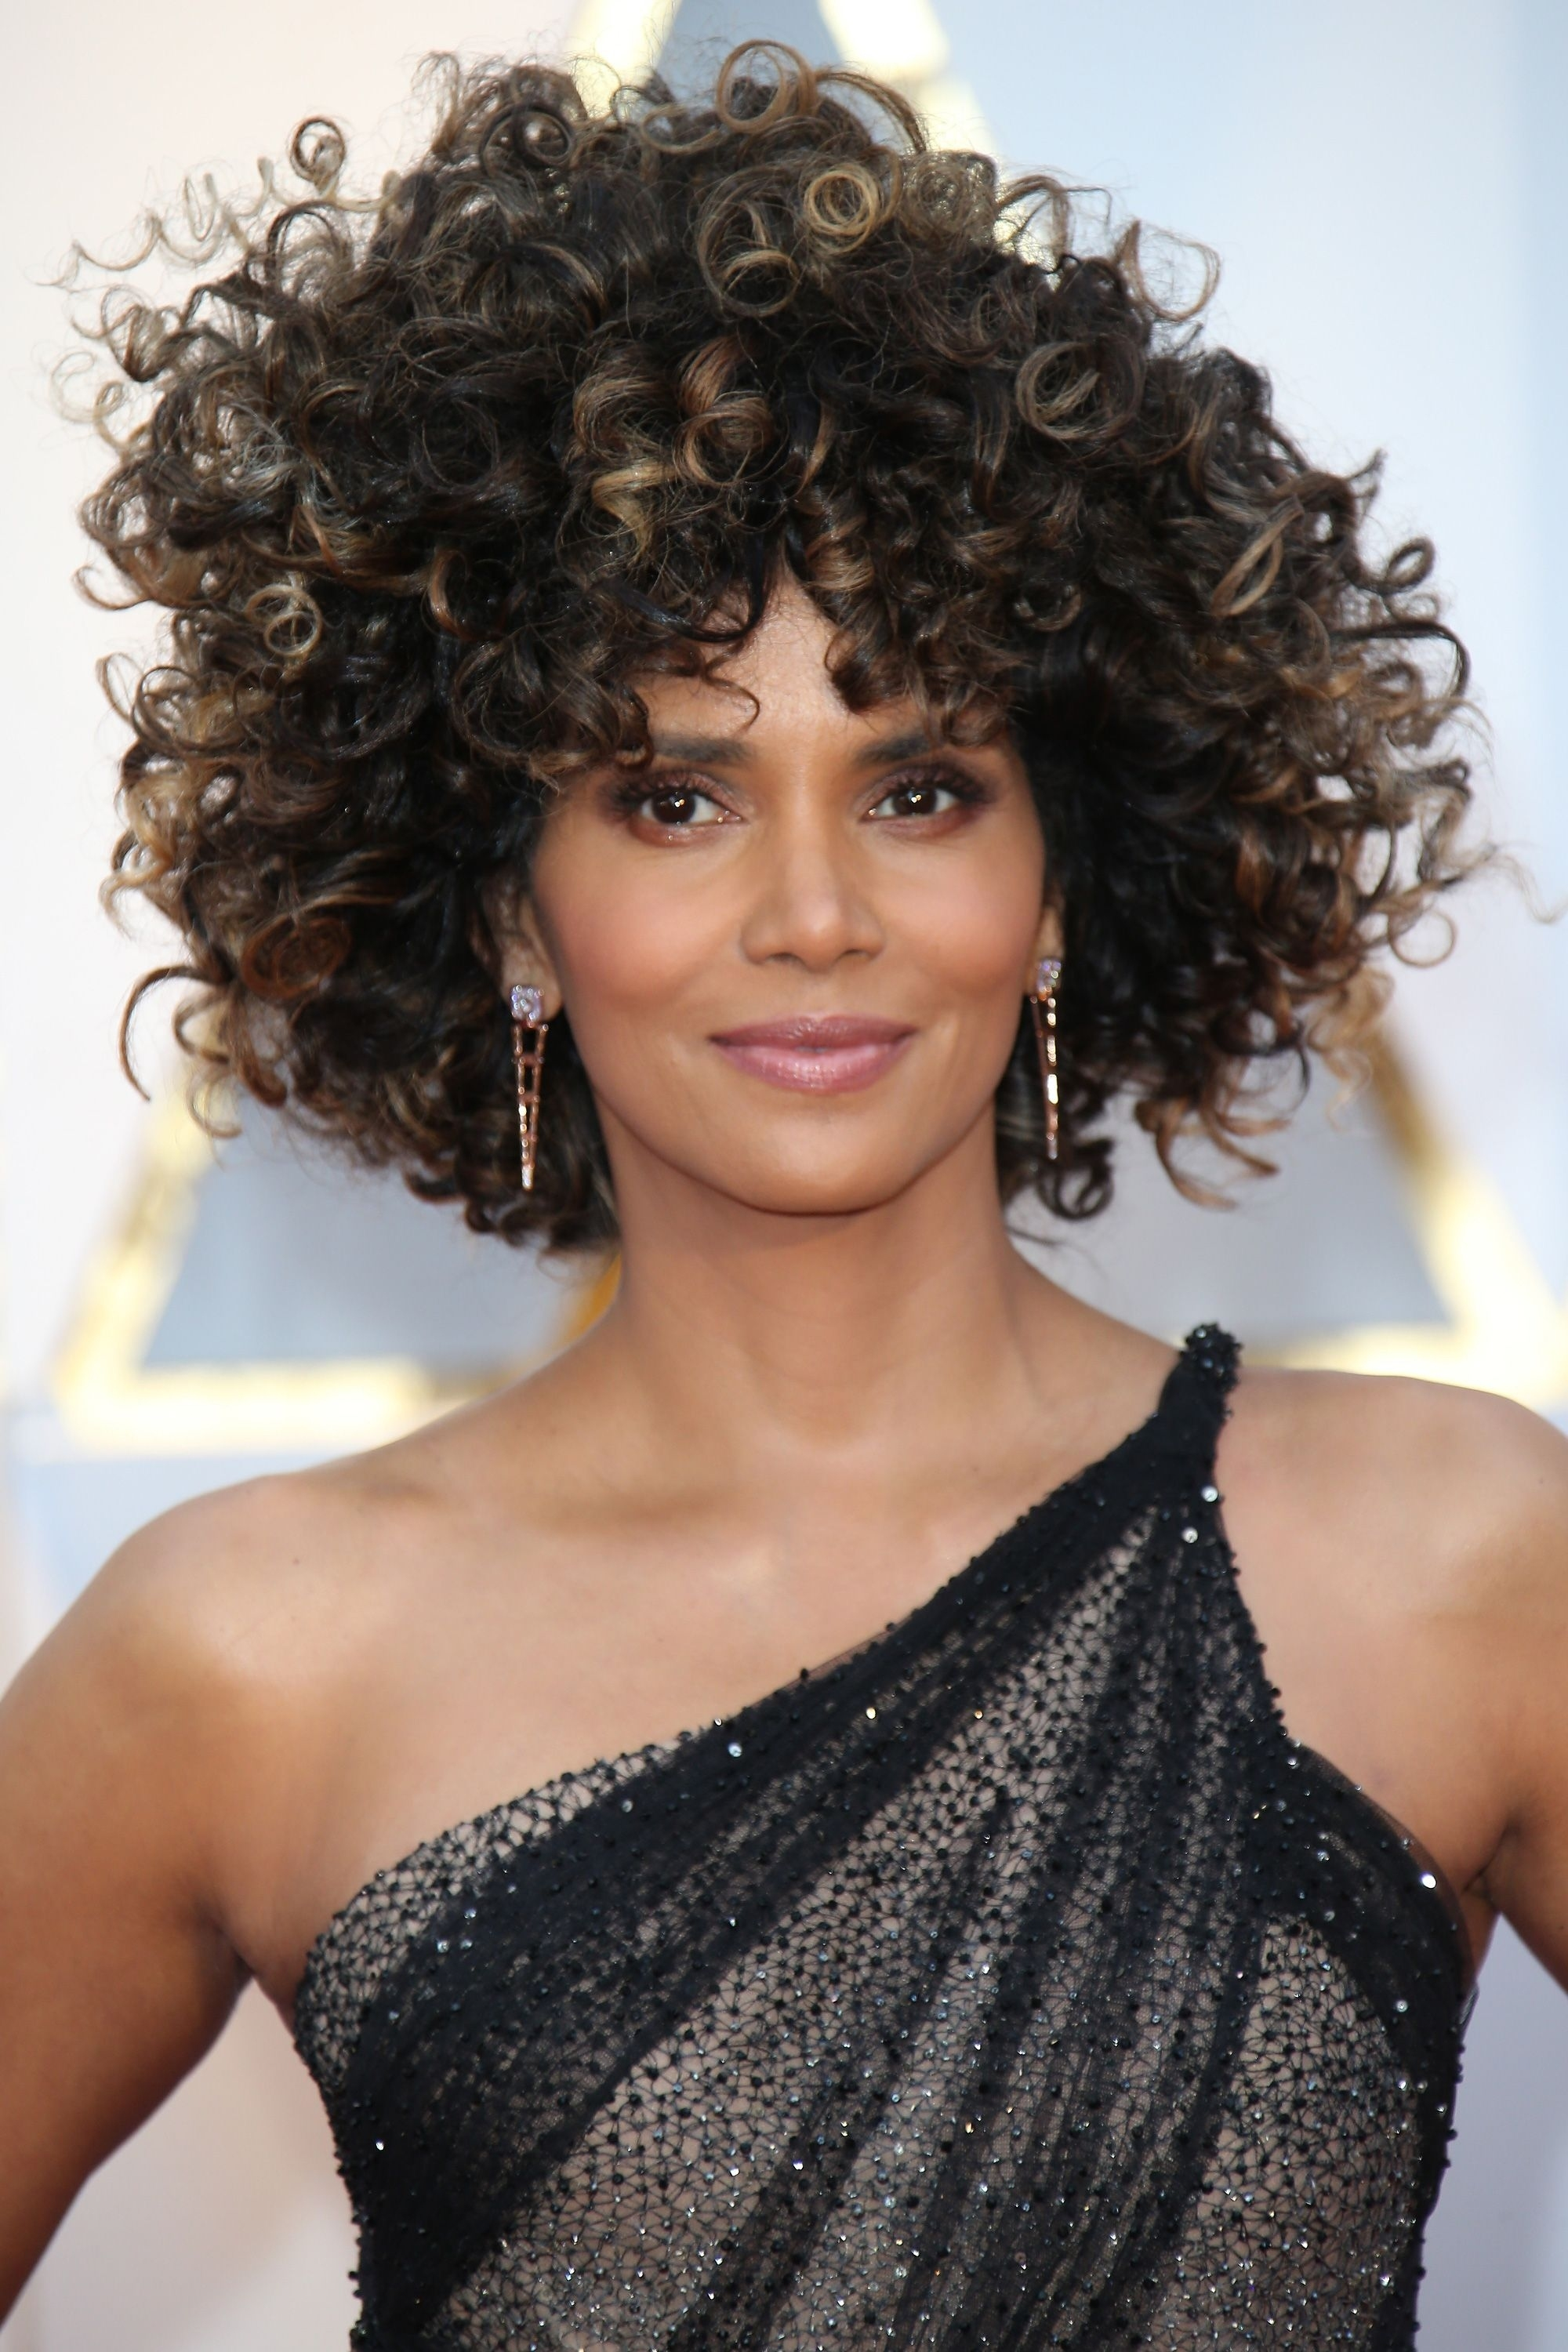 42 Easy Curly Hairstyles - Short, Medium, And Long Haircuts For within Haircuts For Curly Hair With Names